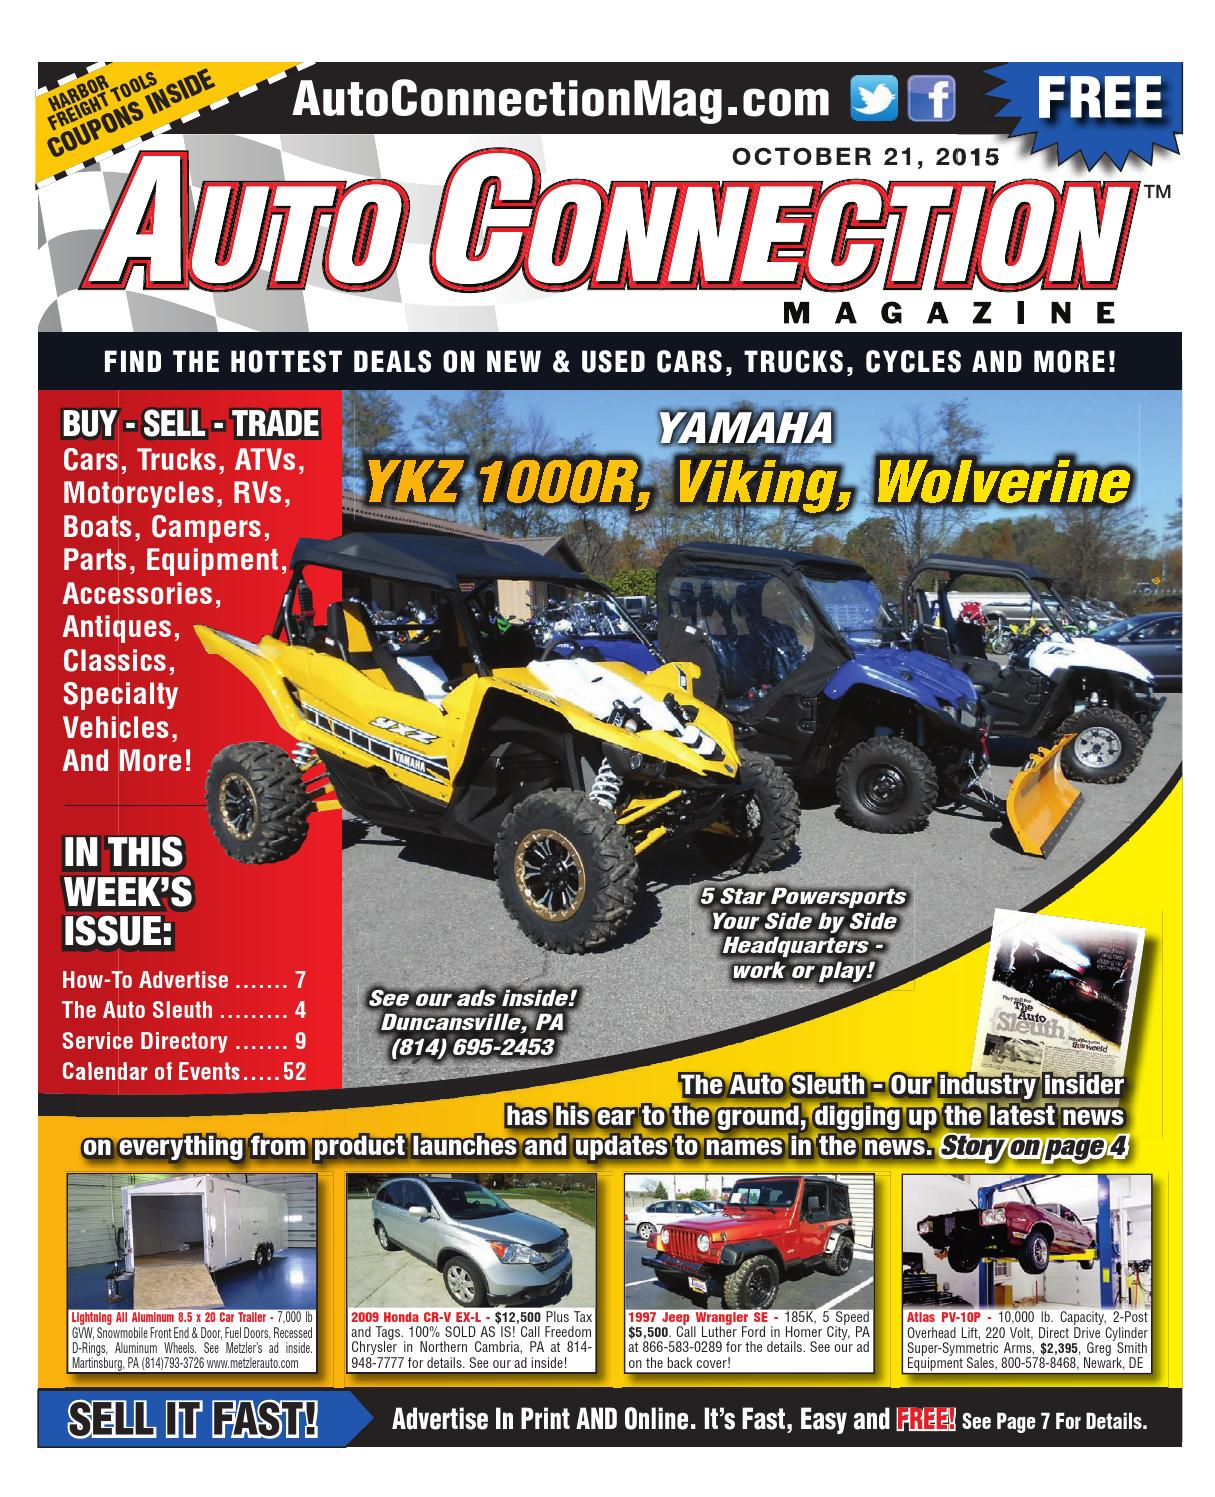 10-21-15 Auto Connection Magazine by Auto Connection Magazine - issuu